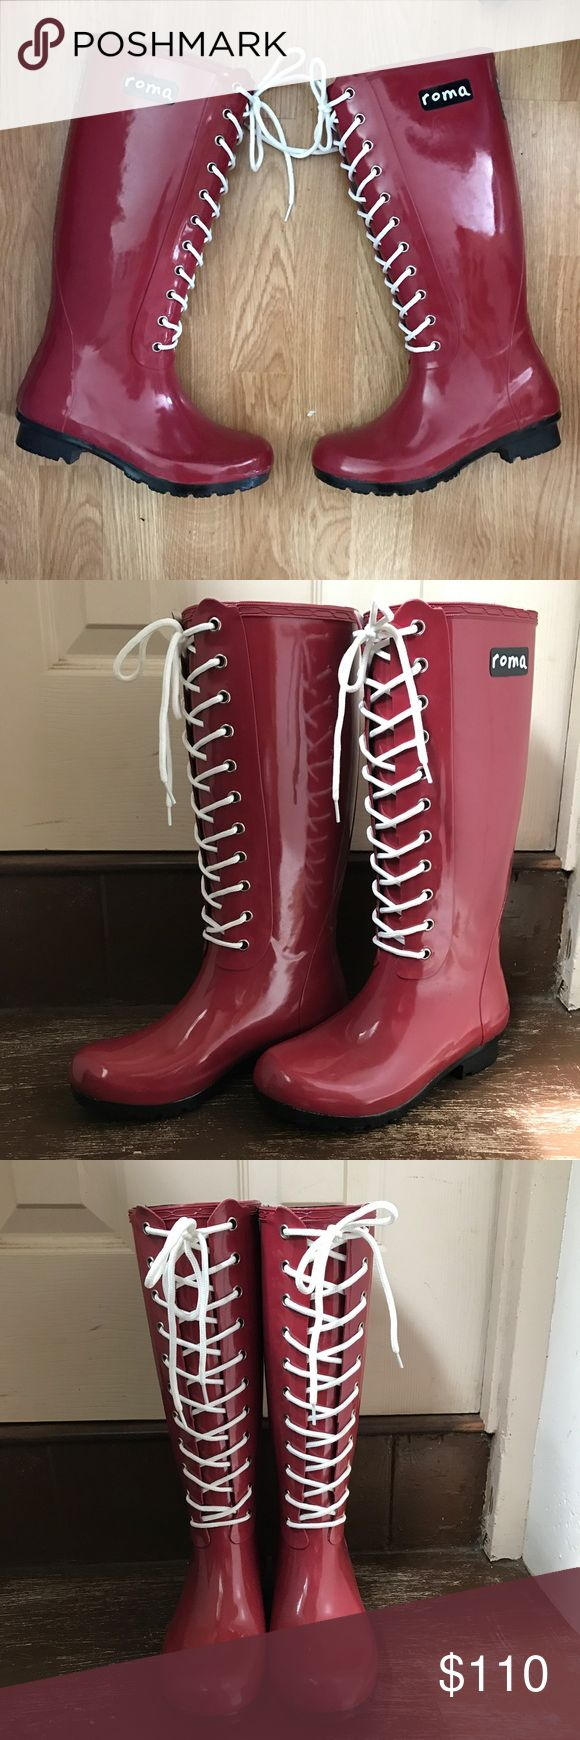 Roma Red Rubber Rain Boots Size 6 Sadie Robertson Roma Boots: For you. For all. Weight 4 lbs Roma Sadie Robertson Womens Opinca Rainboot Color : Claret Red Size : 6  A Sadie Robertson original in the lace-up style, this Opinca Claret rain boot blends fashion and durability into all-weather footwear, with a dash of philanthropy on the side. Made from Natural Rubber. Outsole: Traditional Natural Rubber Lining: Quick Dry Knitted Cotton Lining Footbed: Multi-Layer Cushioned Sole Vegan…